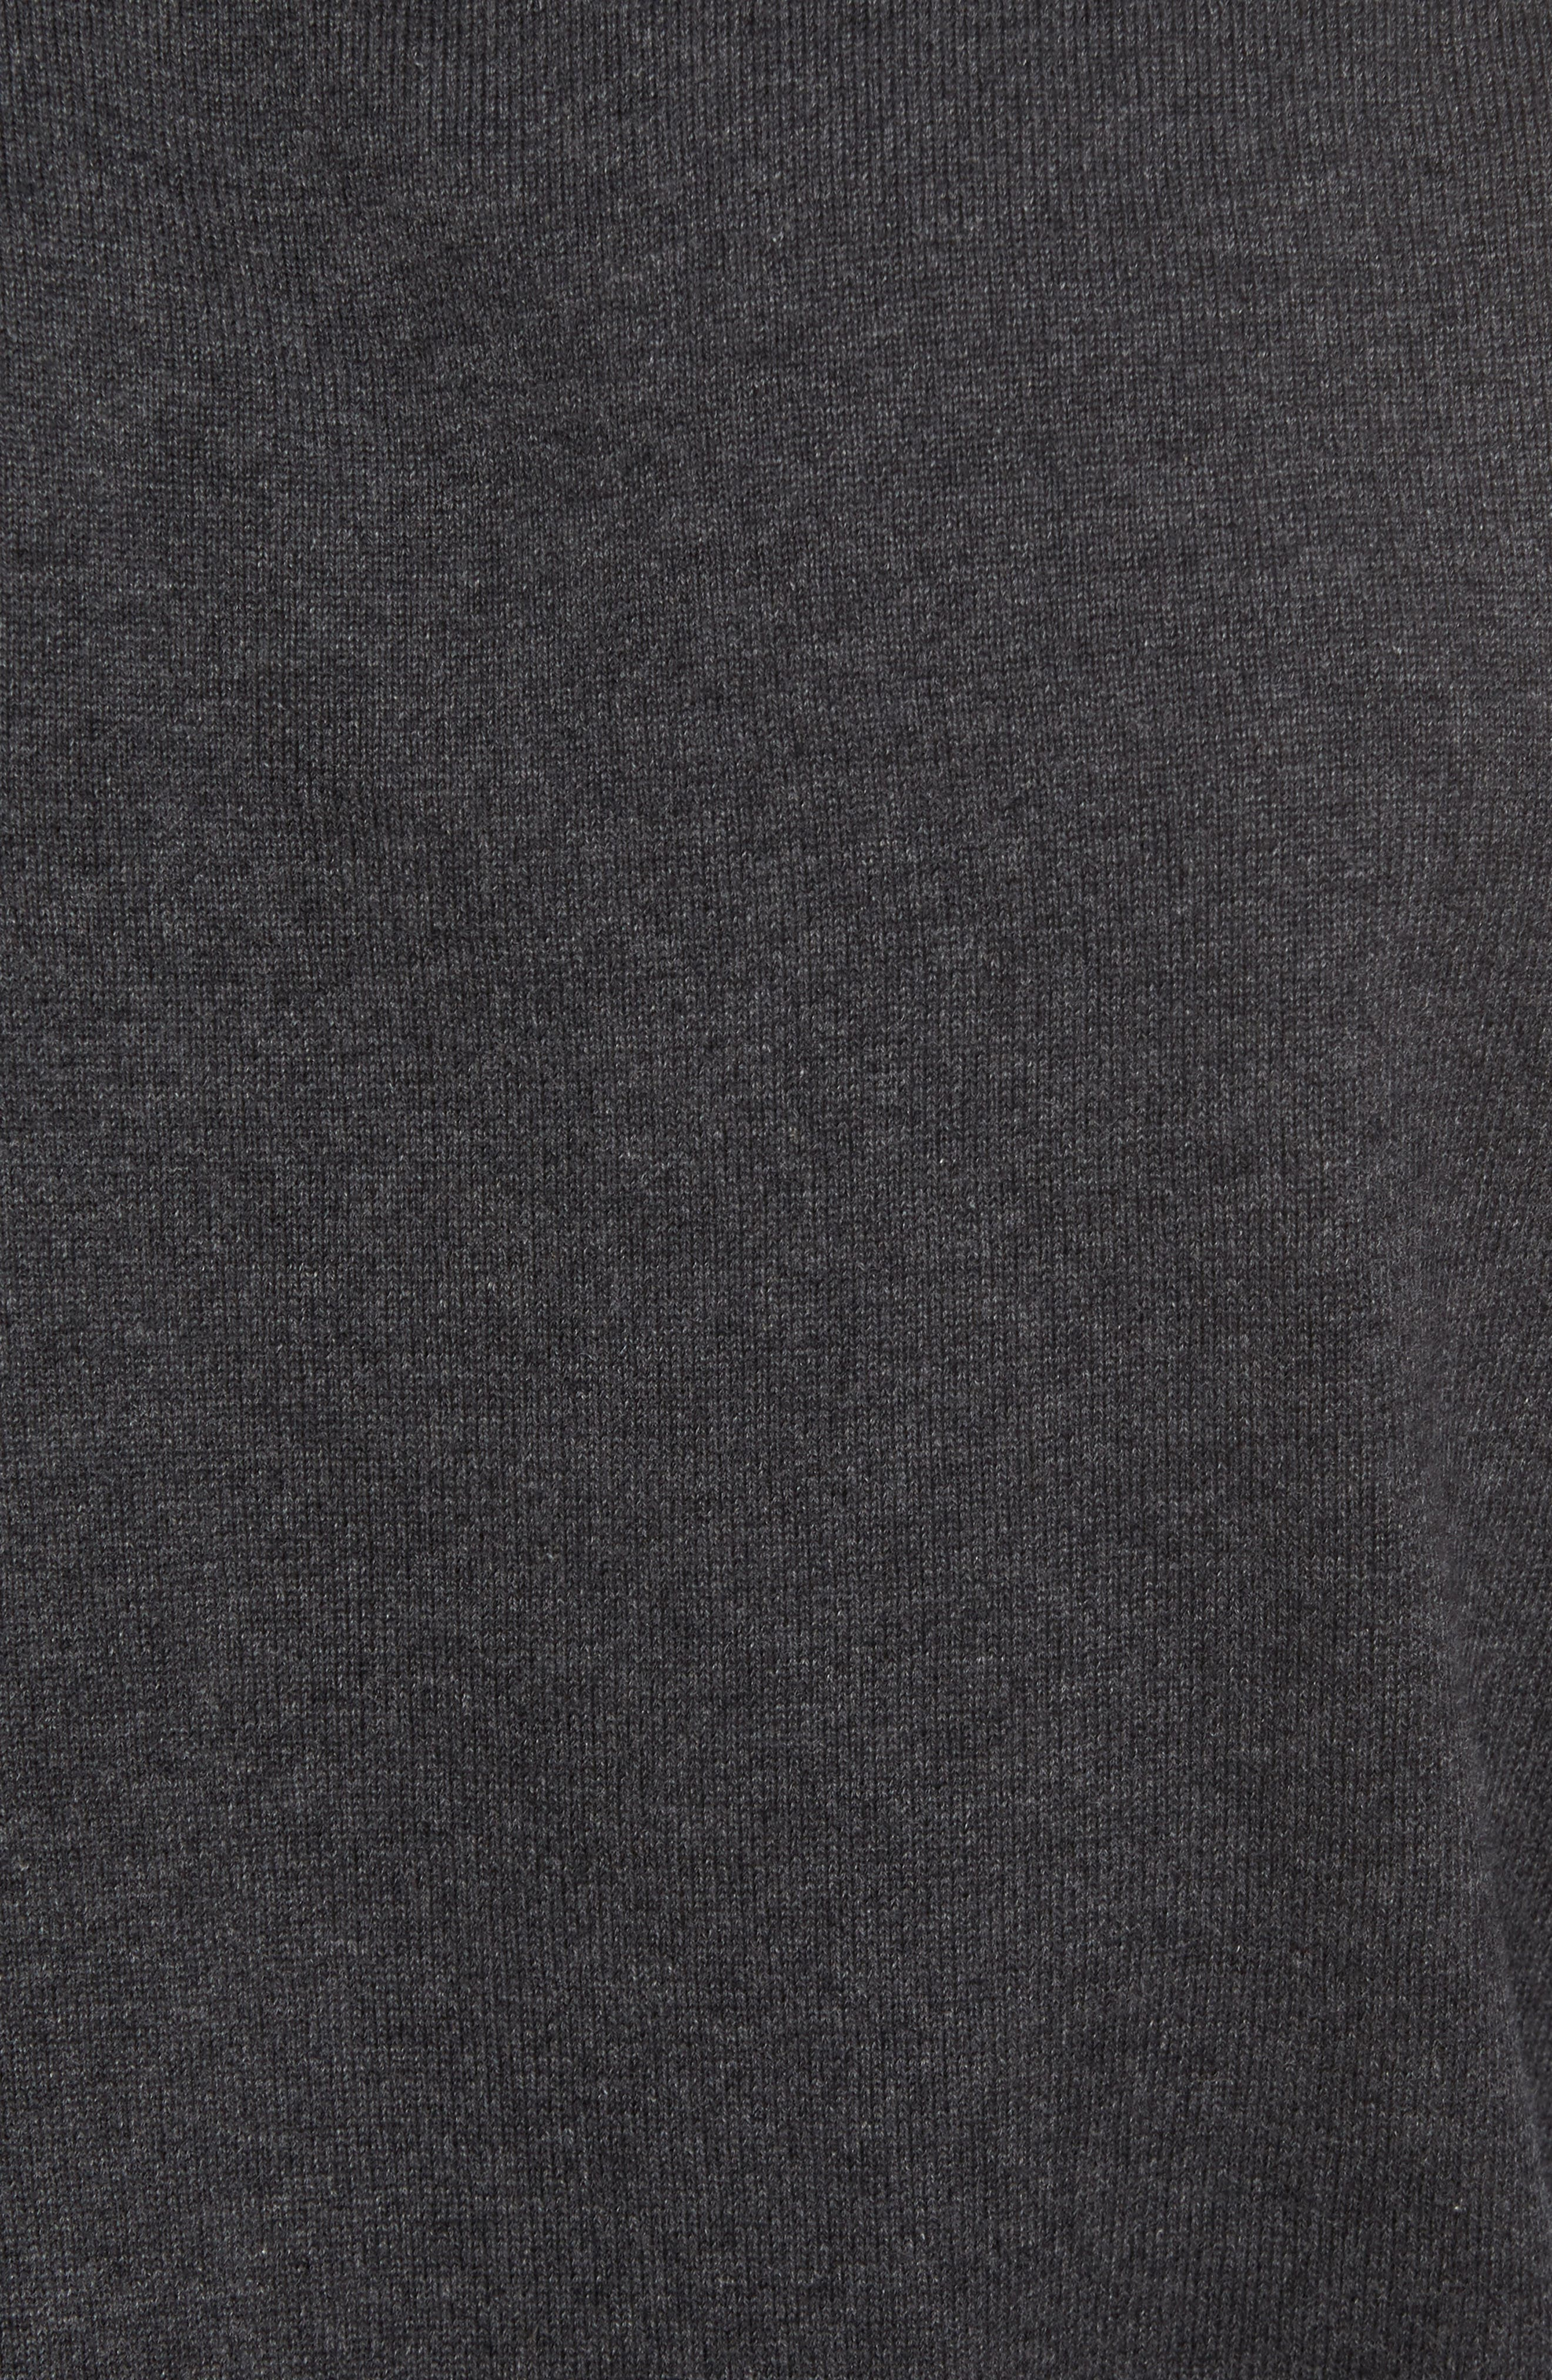 Portrait Crewneck Sweater,                             Alternate thumbnail 5, color,                             015